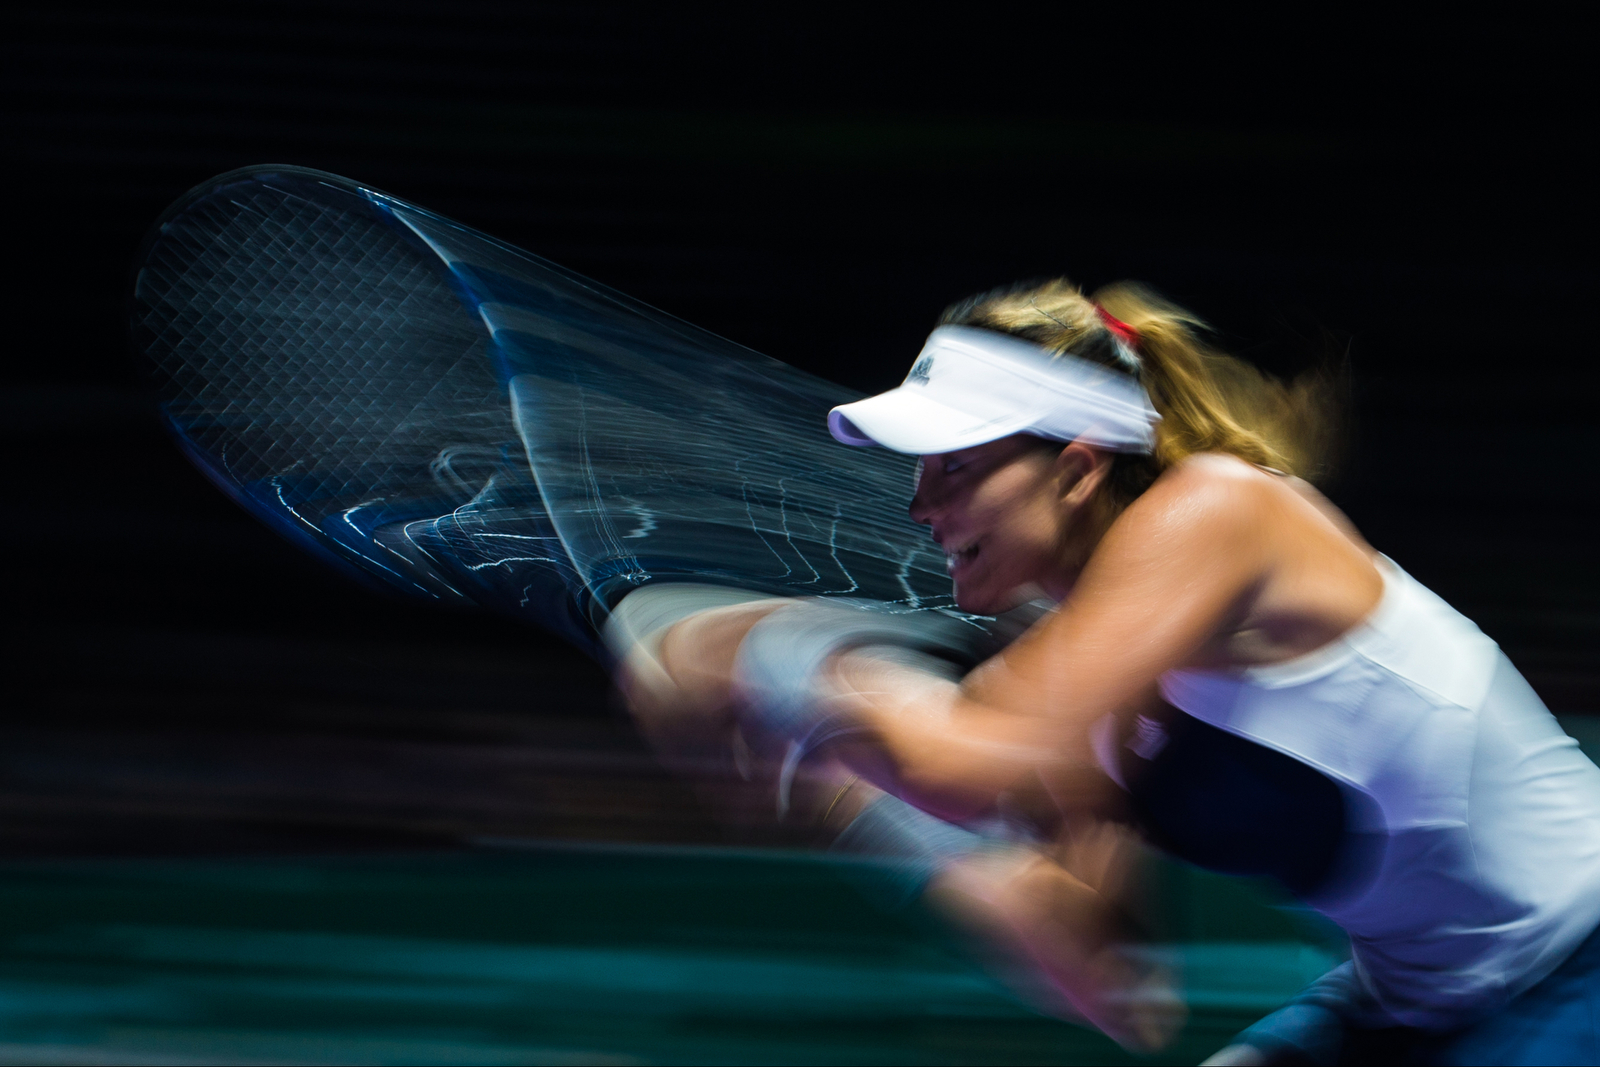 This was one single frame which I liked a lot last year - a pan of Garbiñe Muguruza which I got really lucky with.